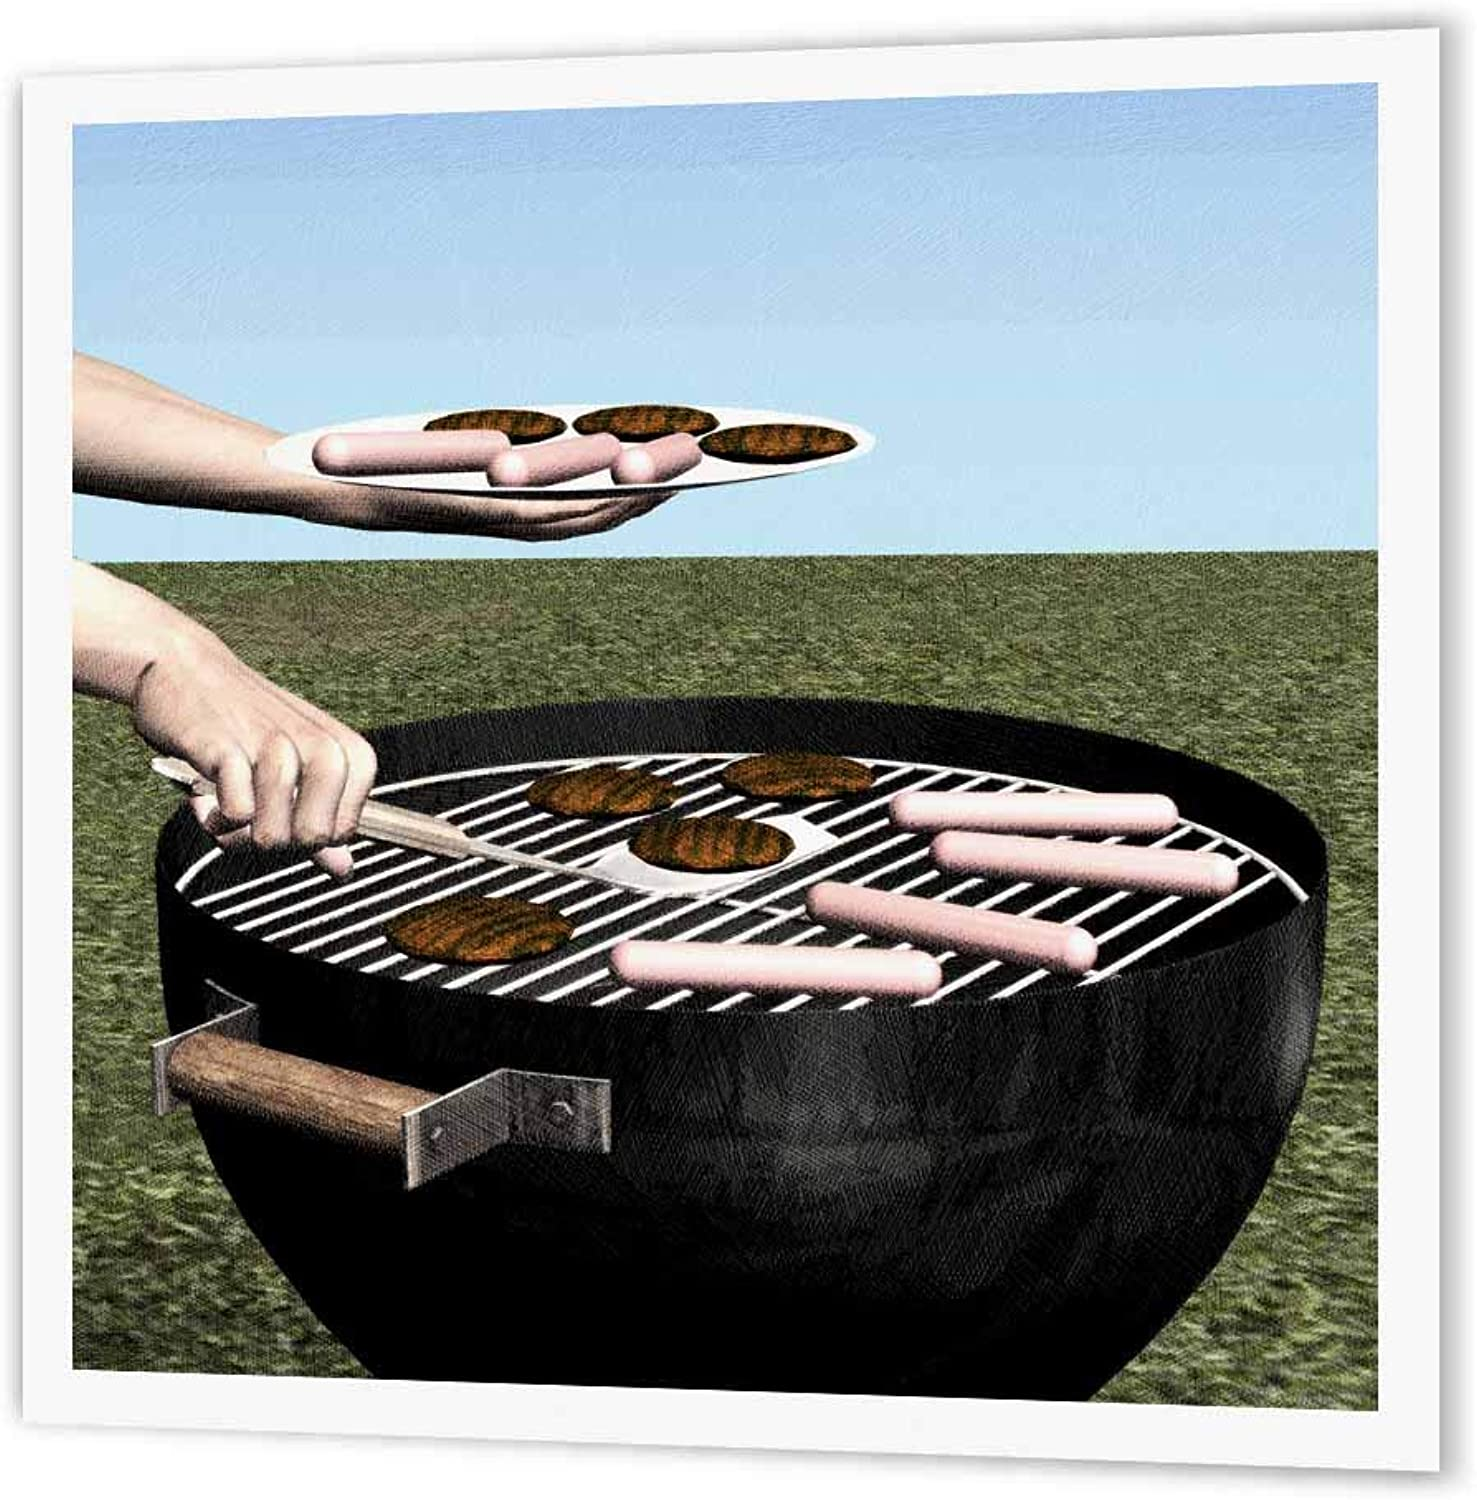 3dpink ht_62959_2 Barbeque Serving Hamburgers and Hotdogs Iron on Heat Heat Heat Transfer for White Material, 6 by 6Inch e83369